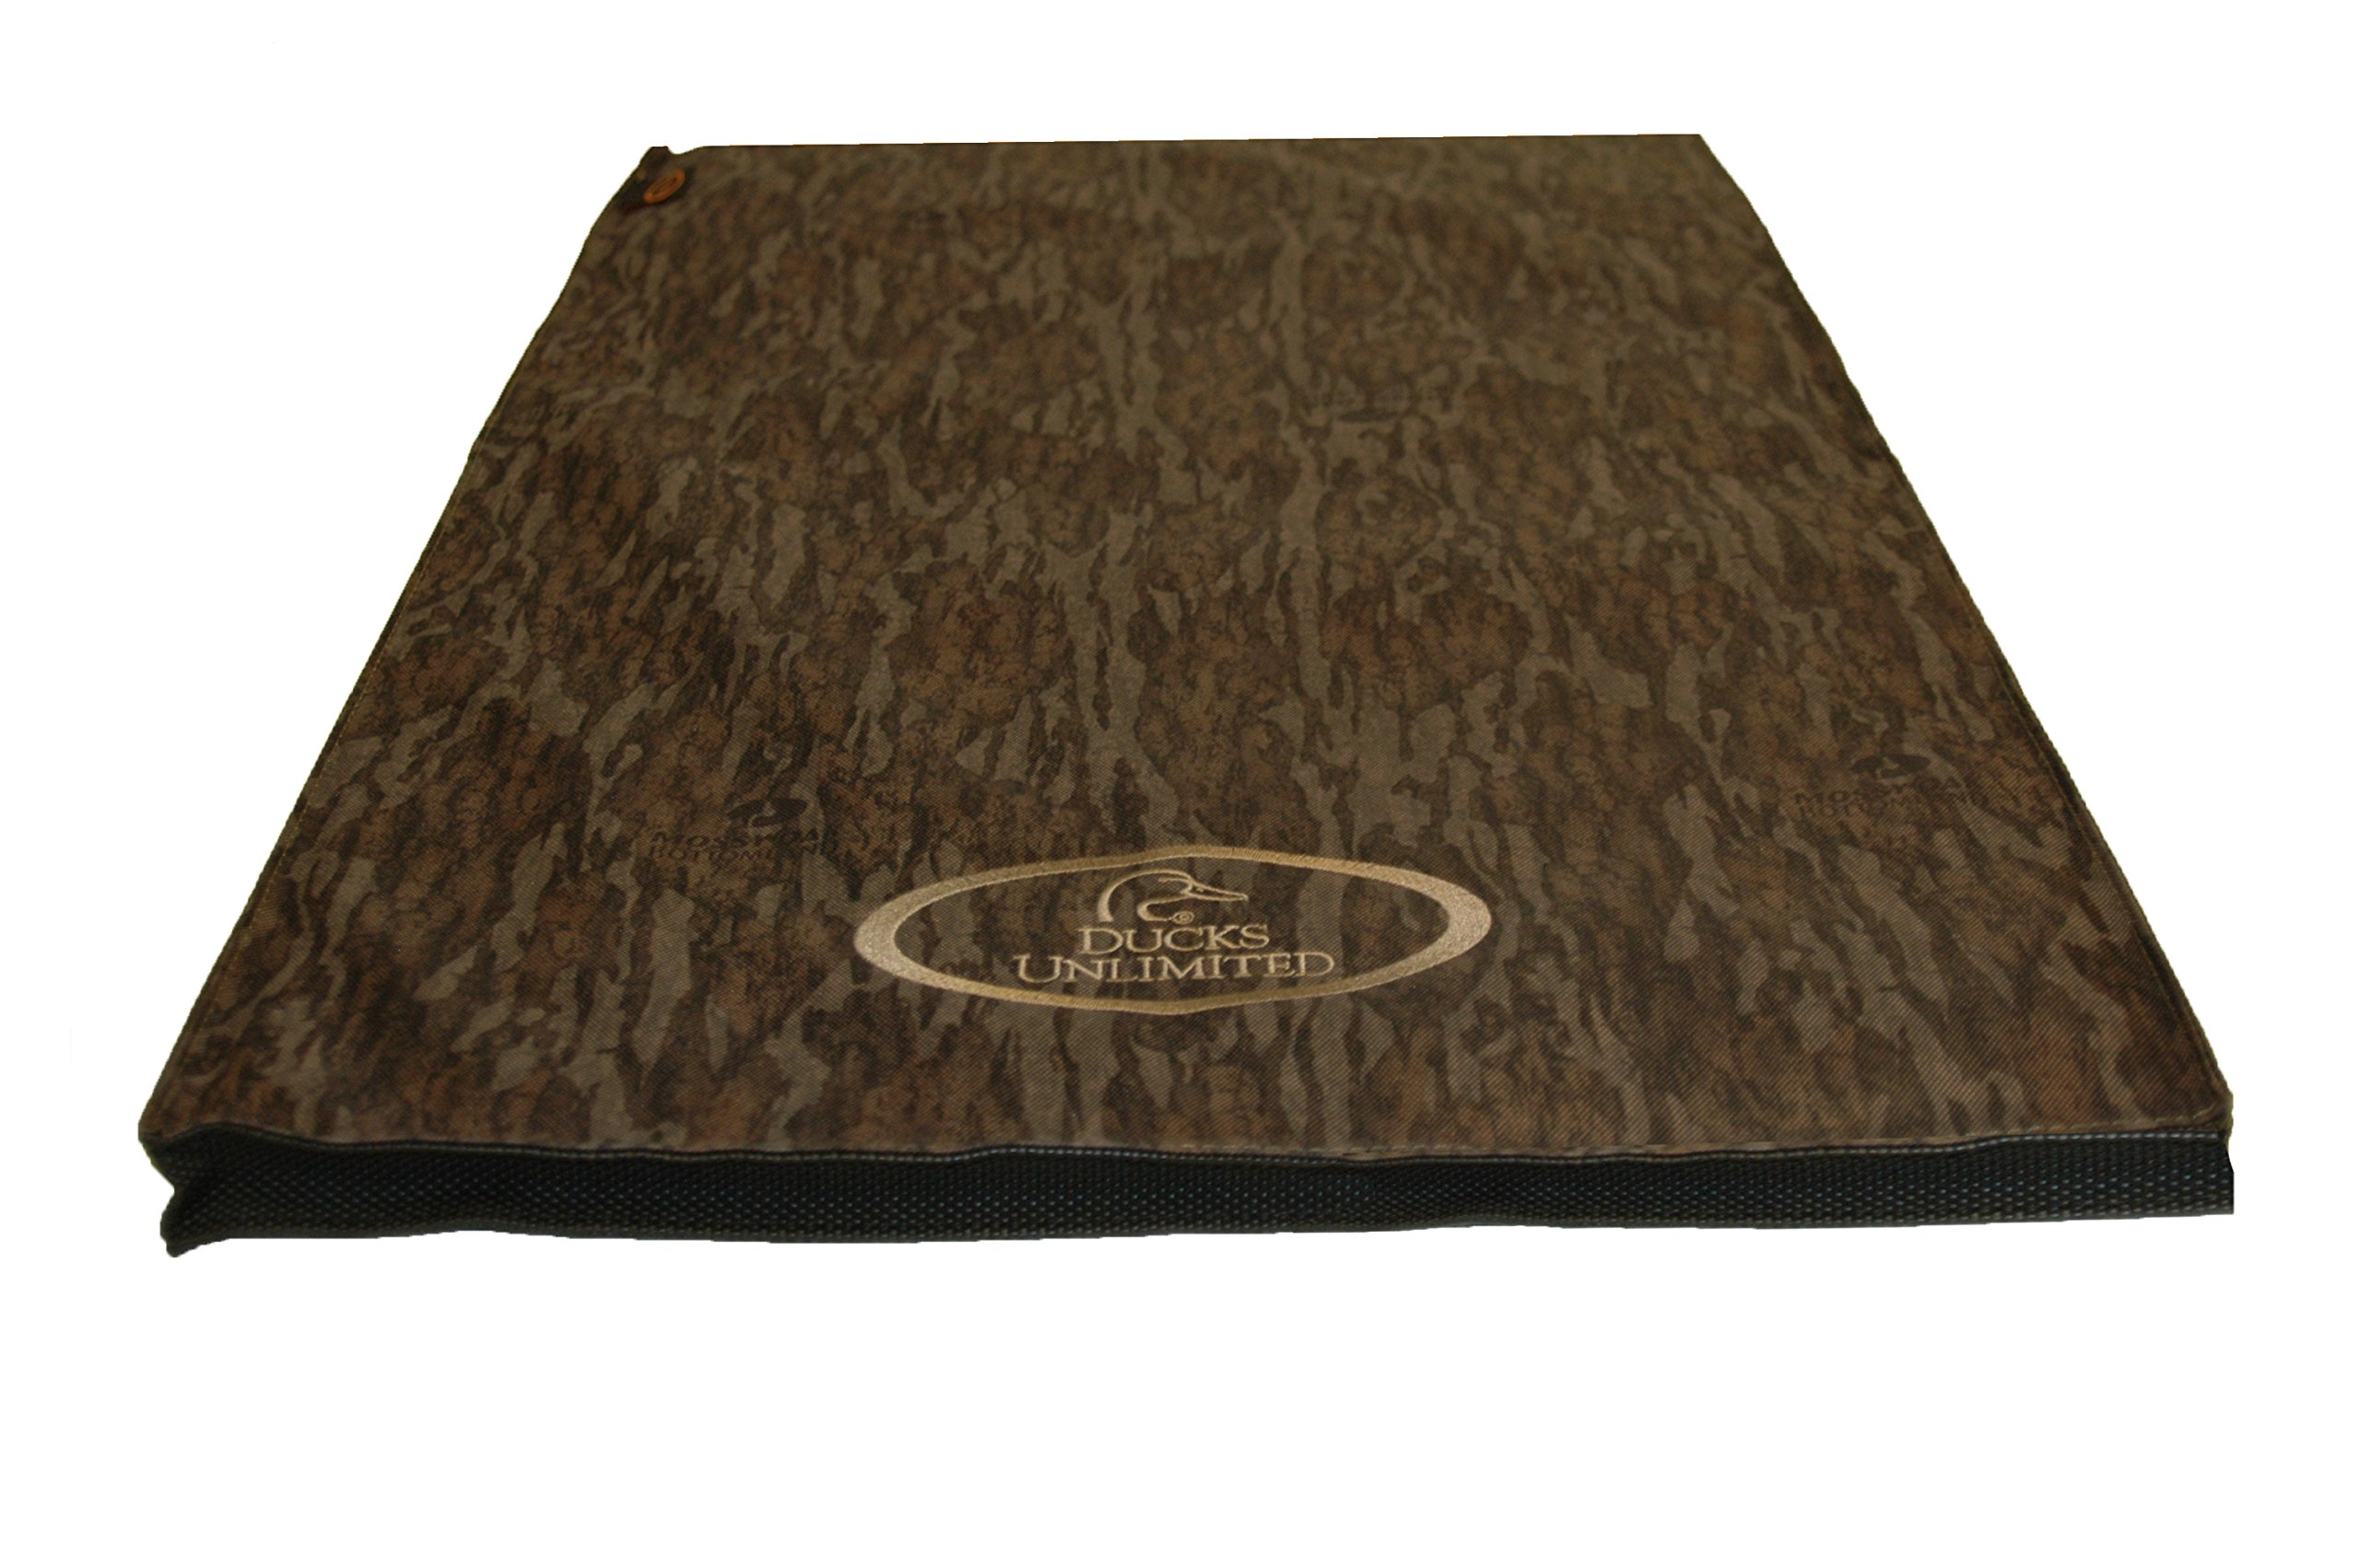 Ducks Unlimited Bottomland Crate Pad, Medium/Large